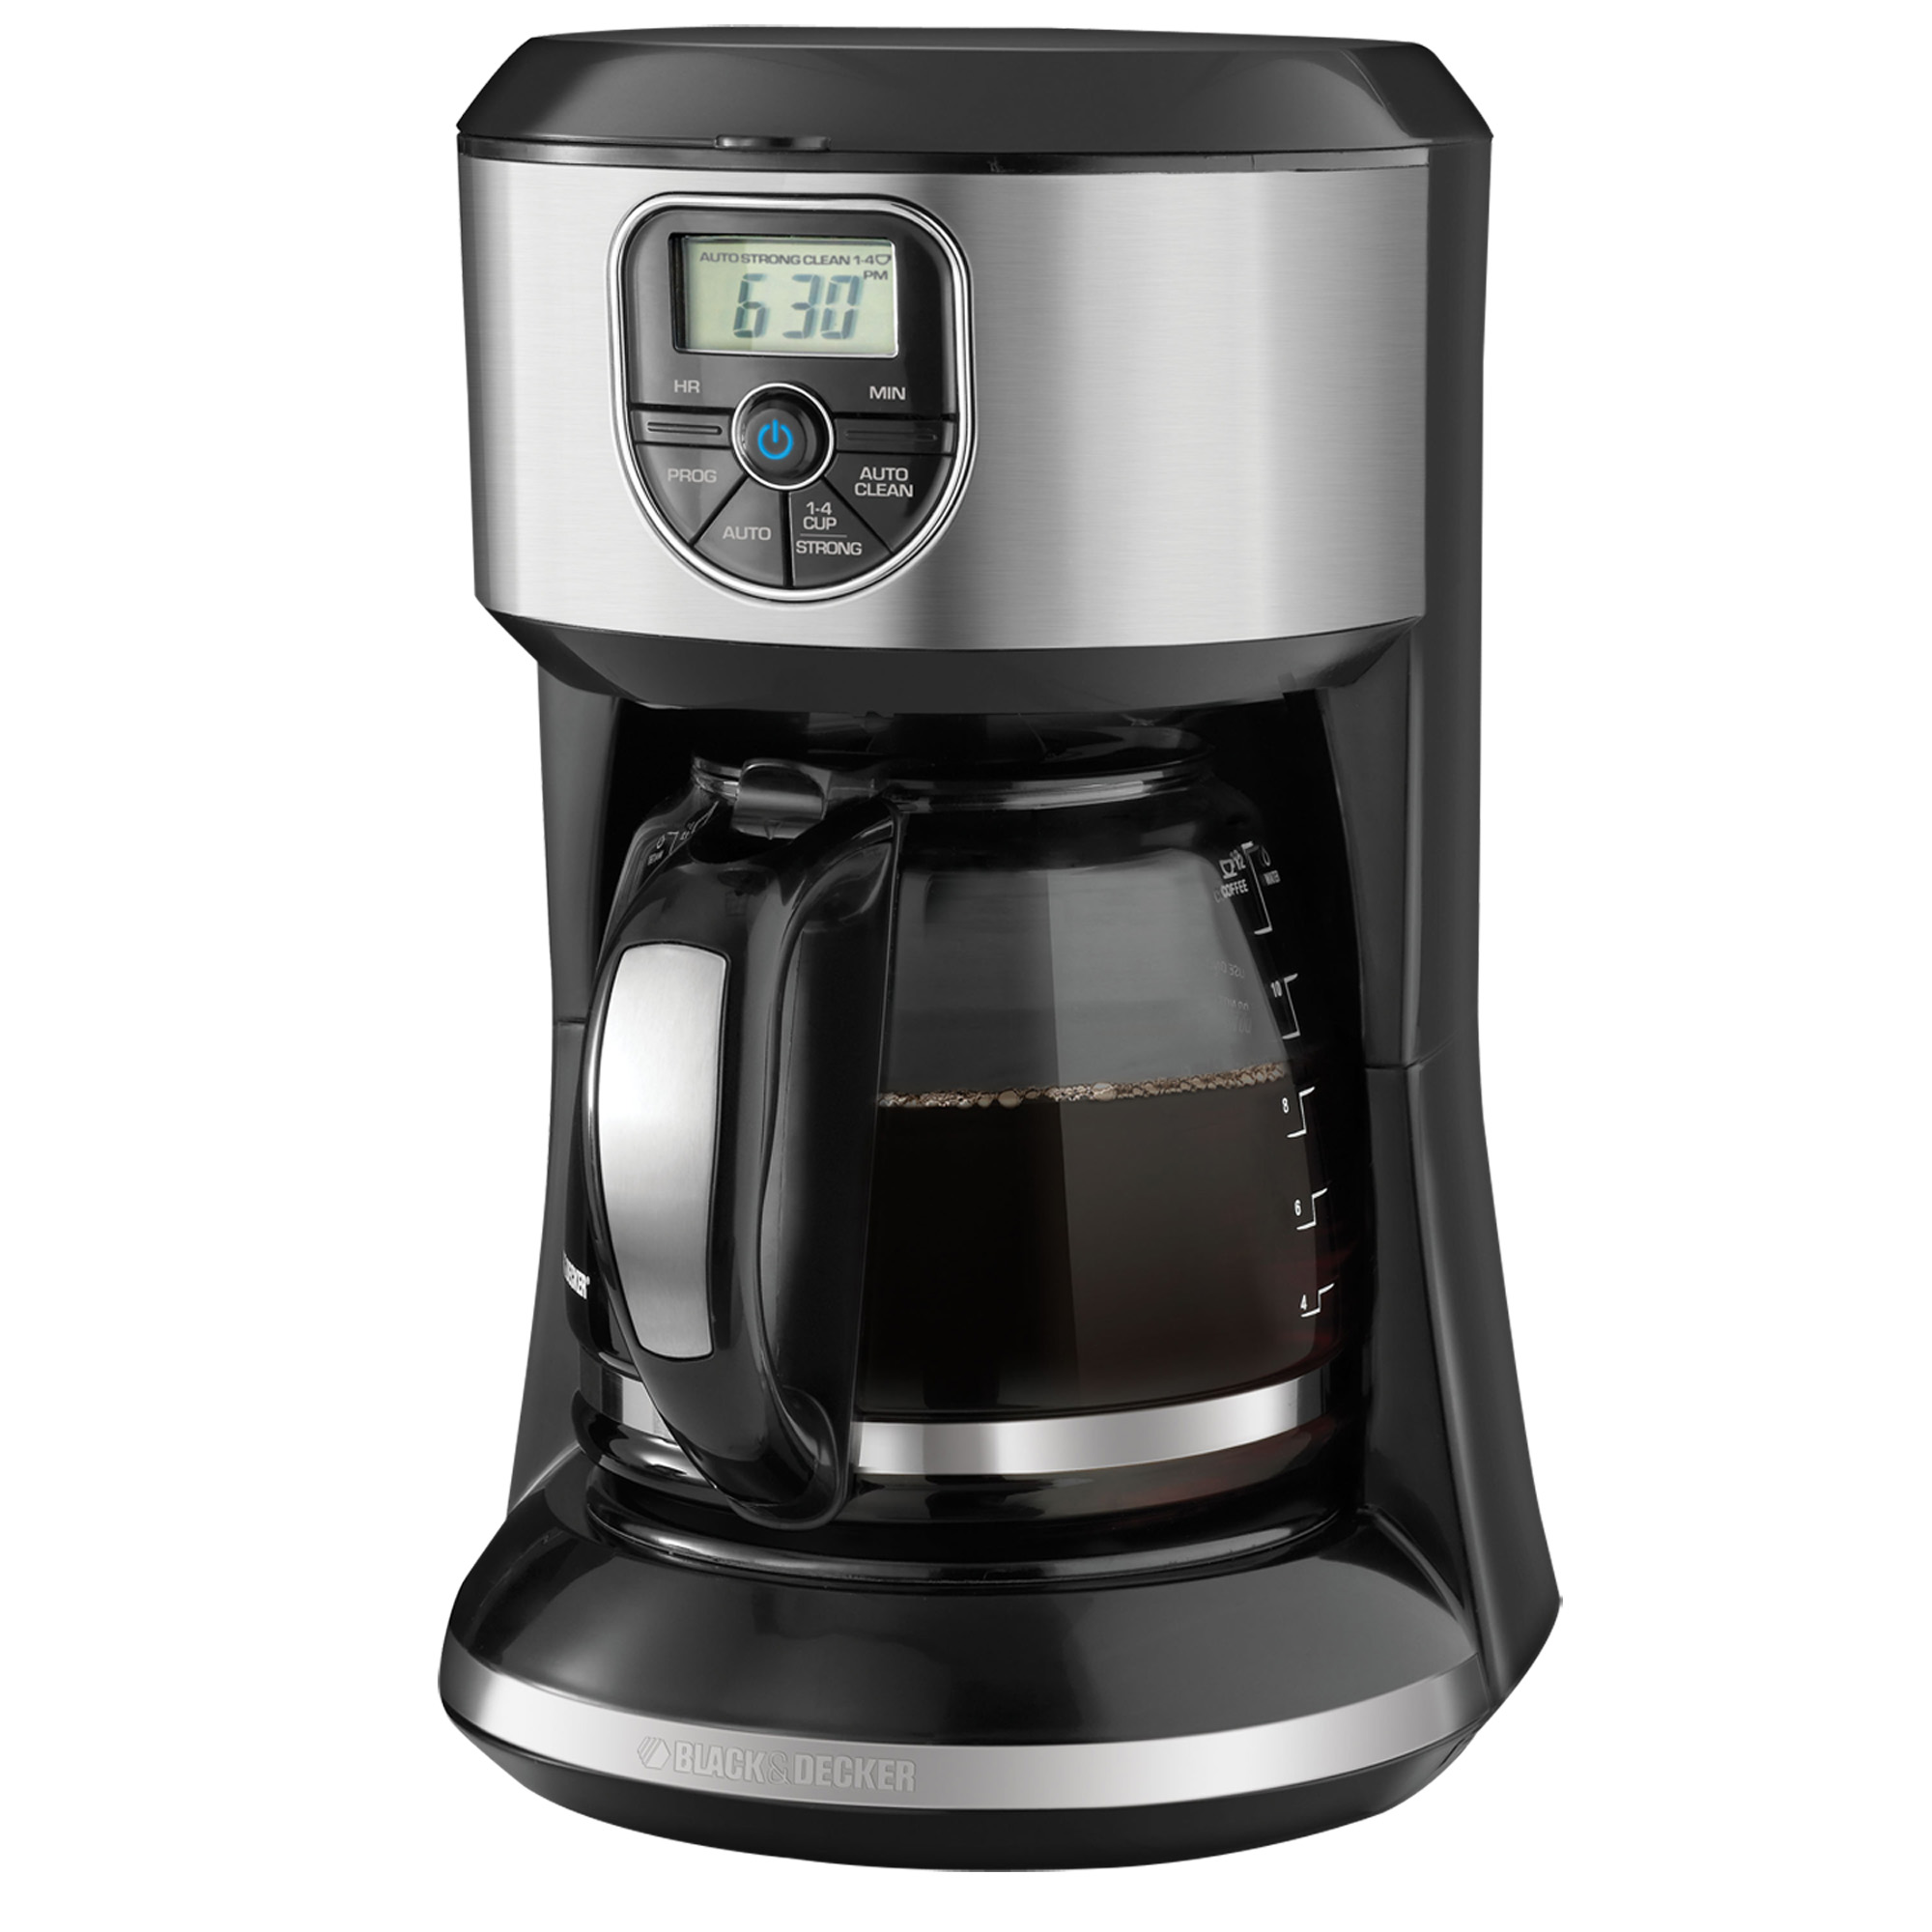 Black and Decker coffee maker small kitchen appliances